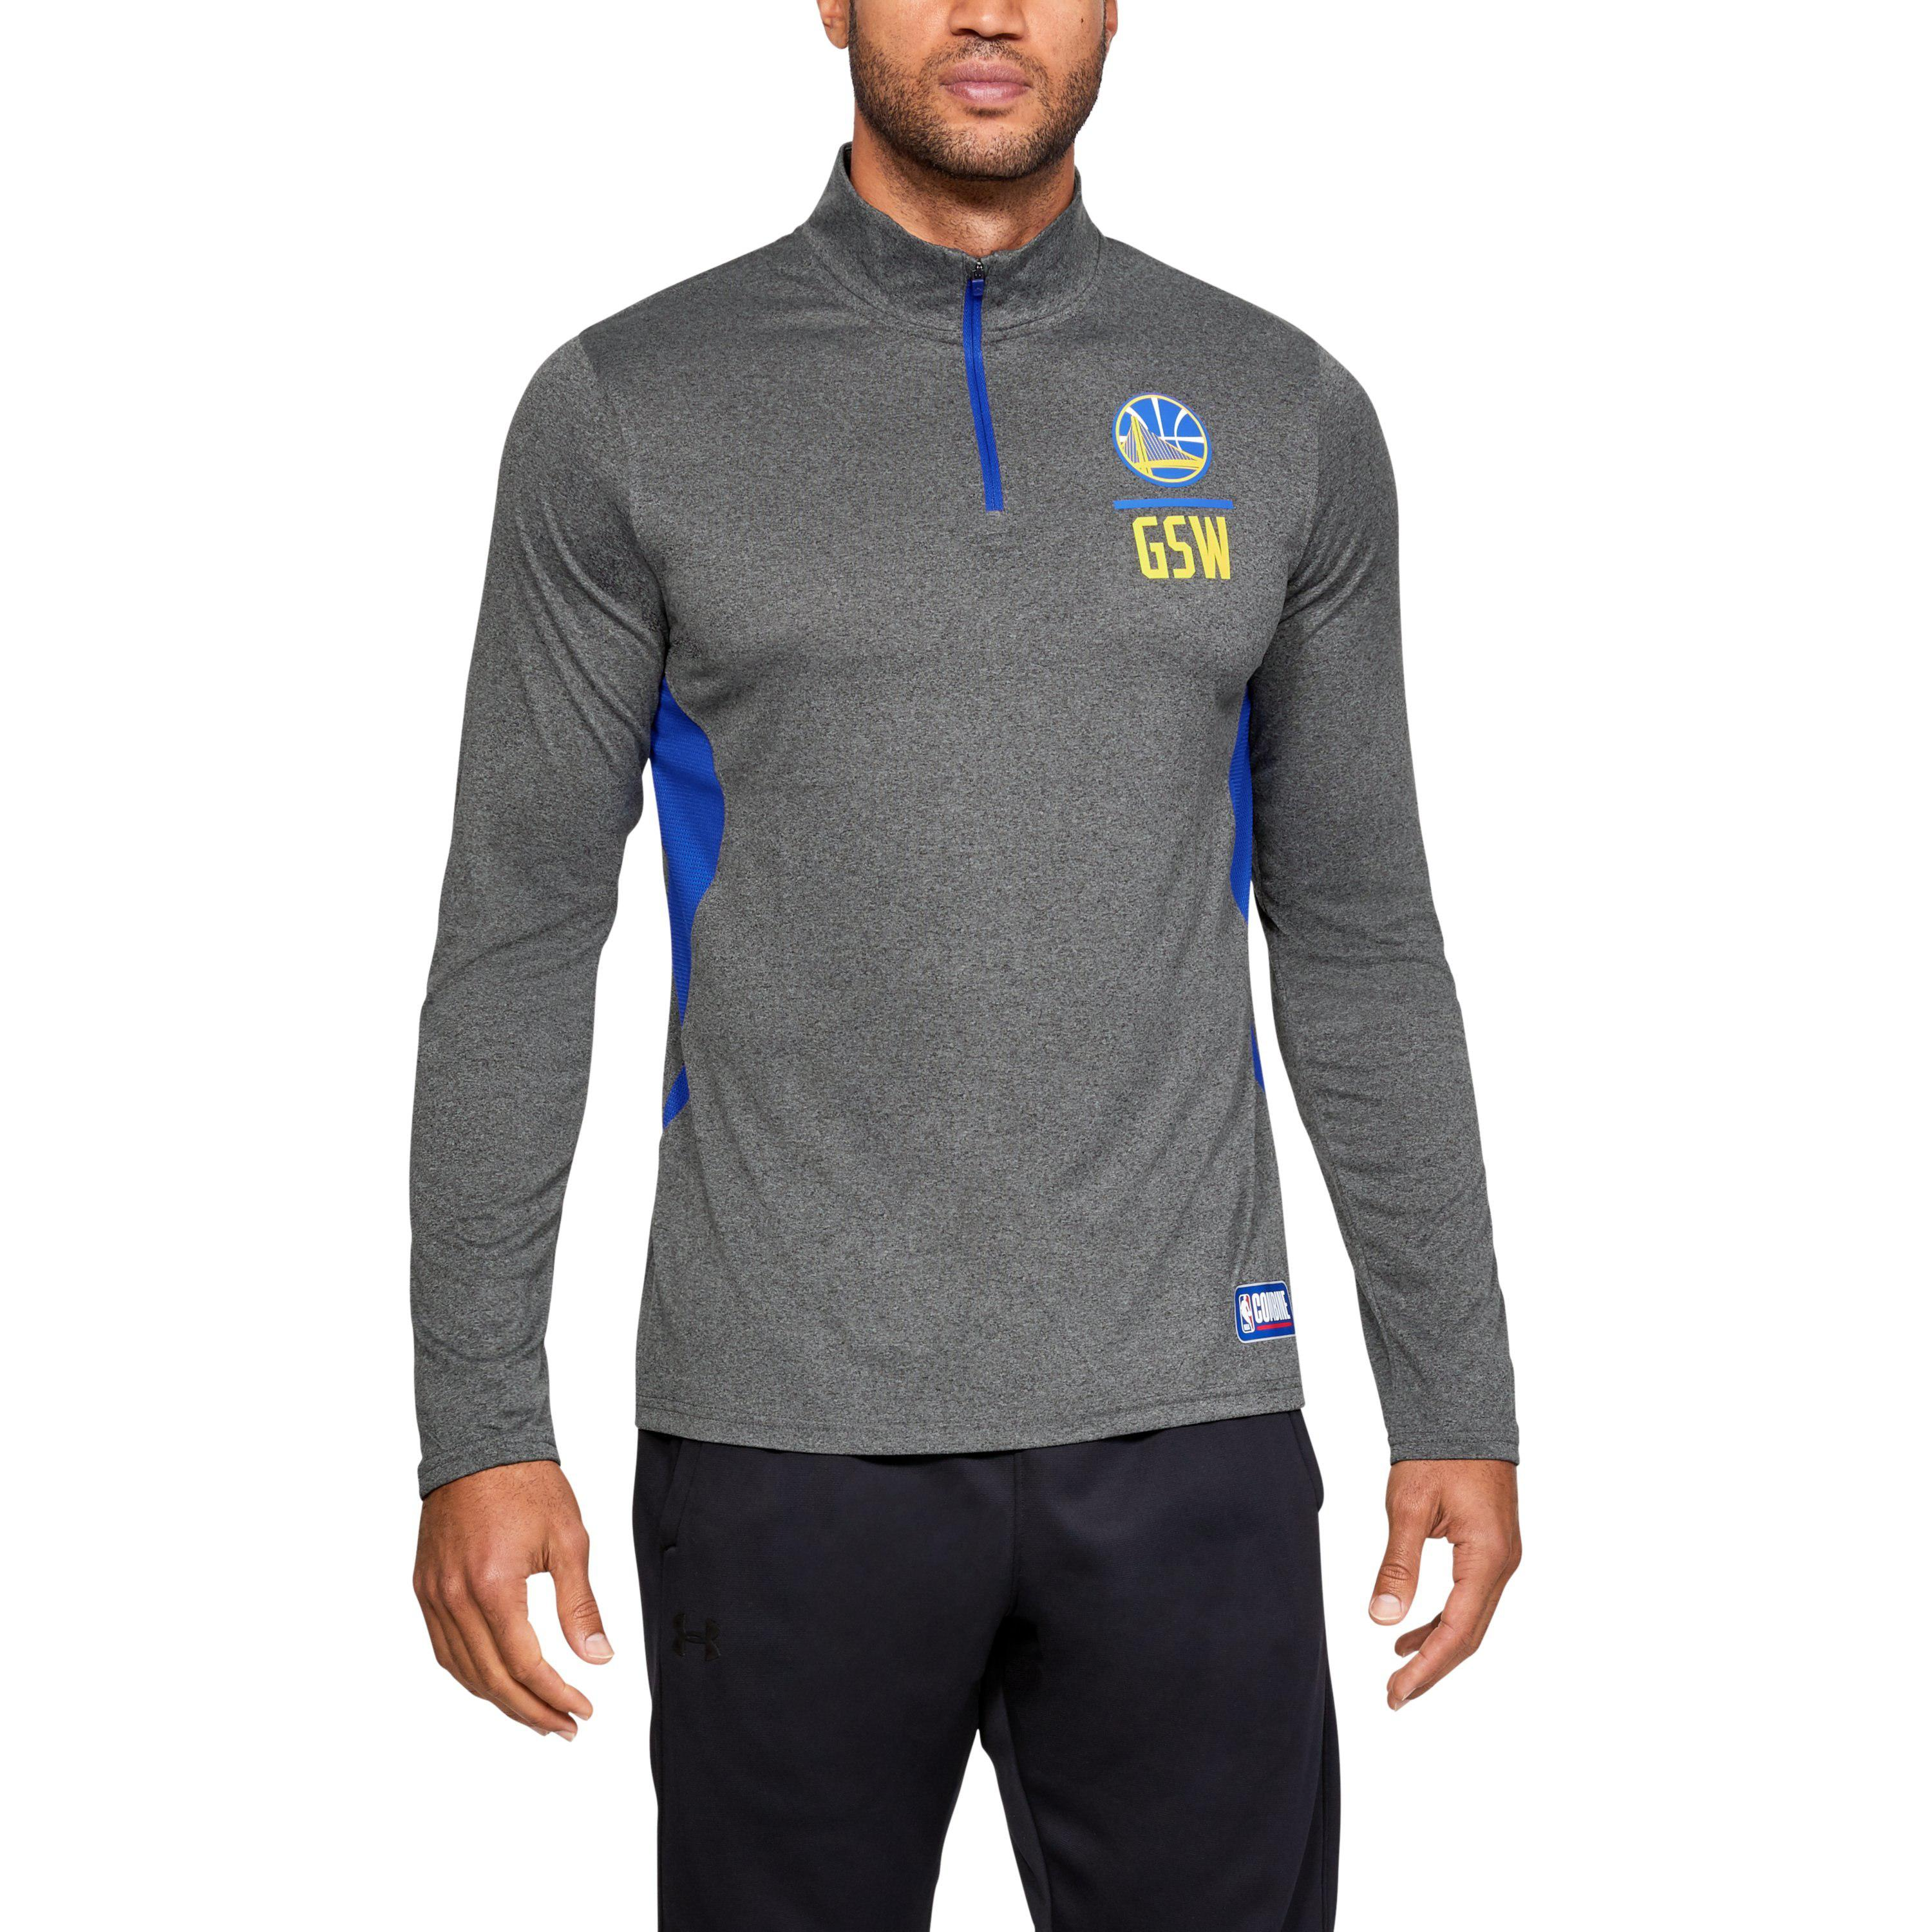 2a9222a03 Under Armour. Blue Men s Nba Combine Authentic Ua Season 1⁄4 Zip Long Sleeve